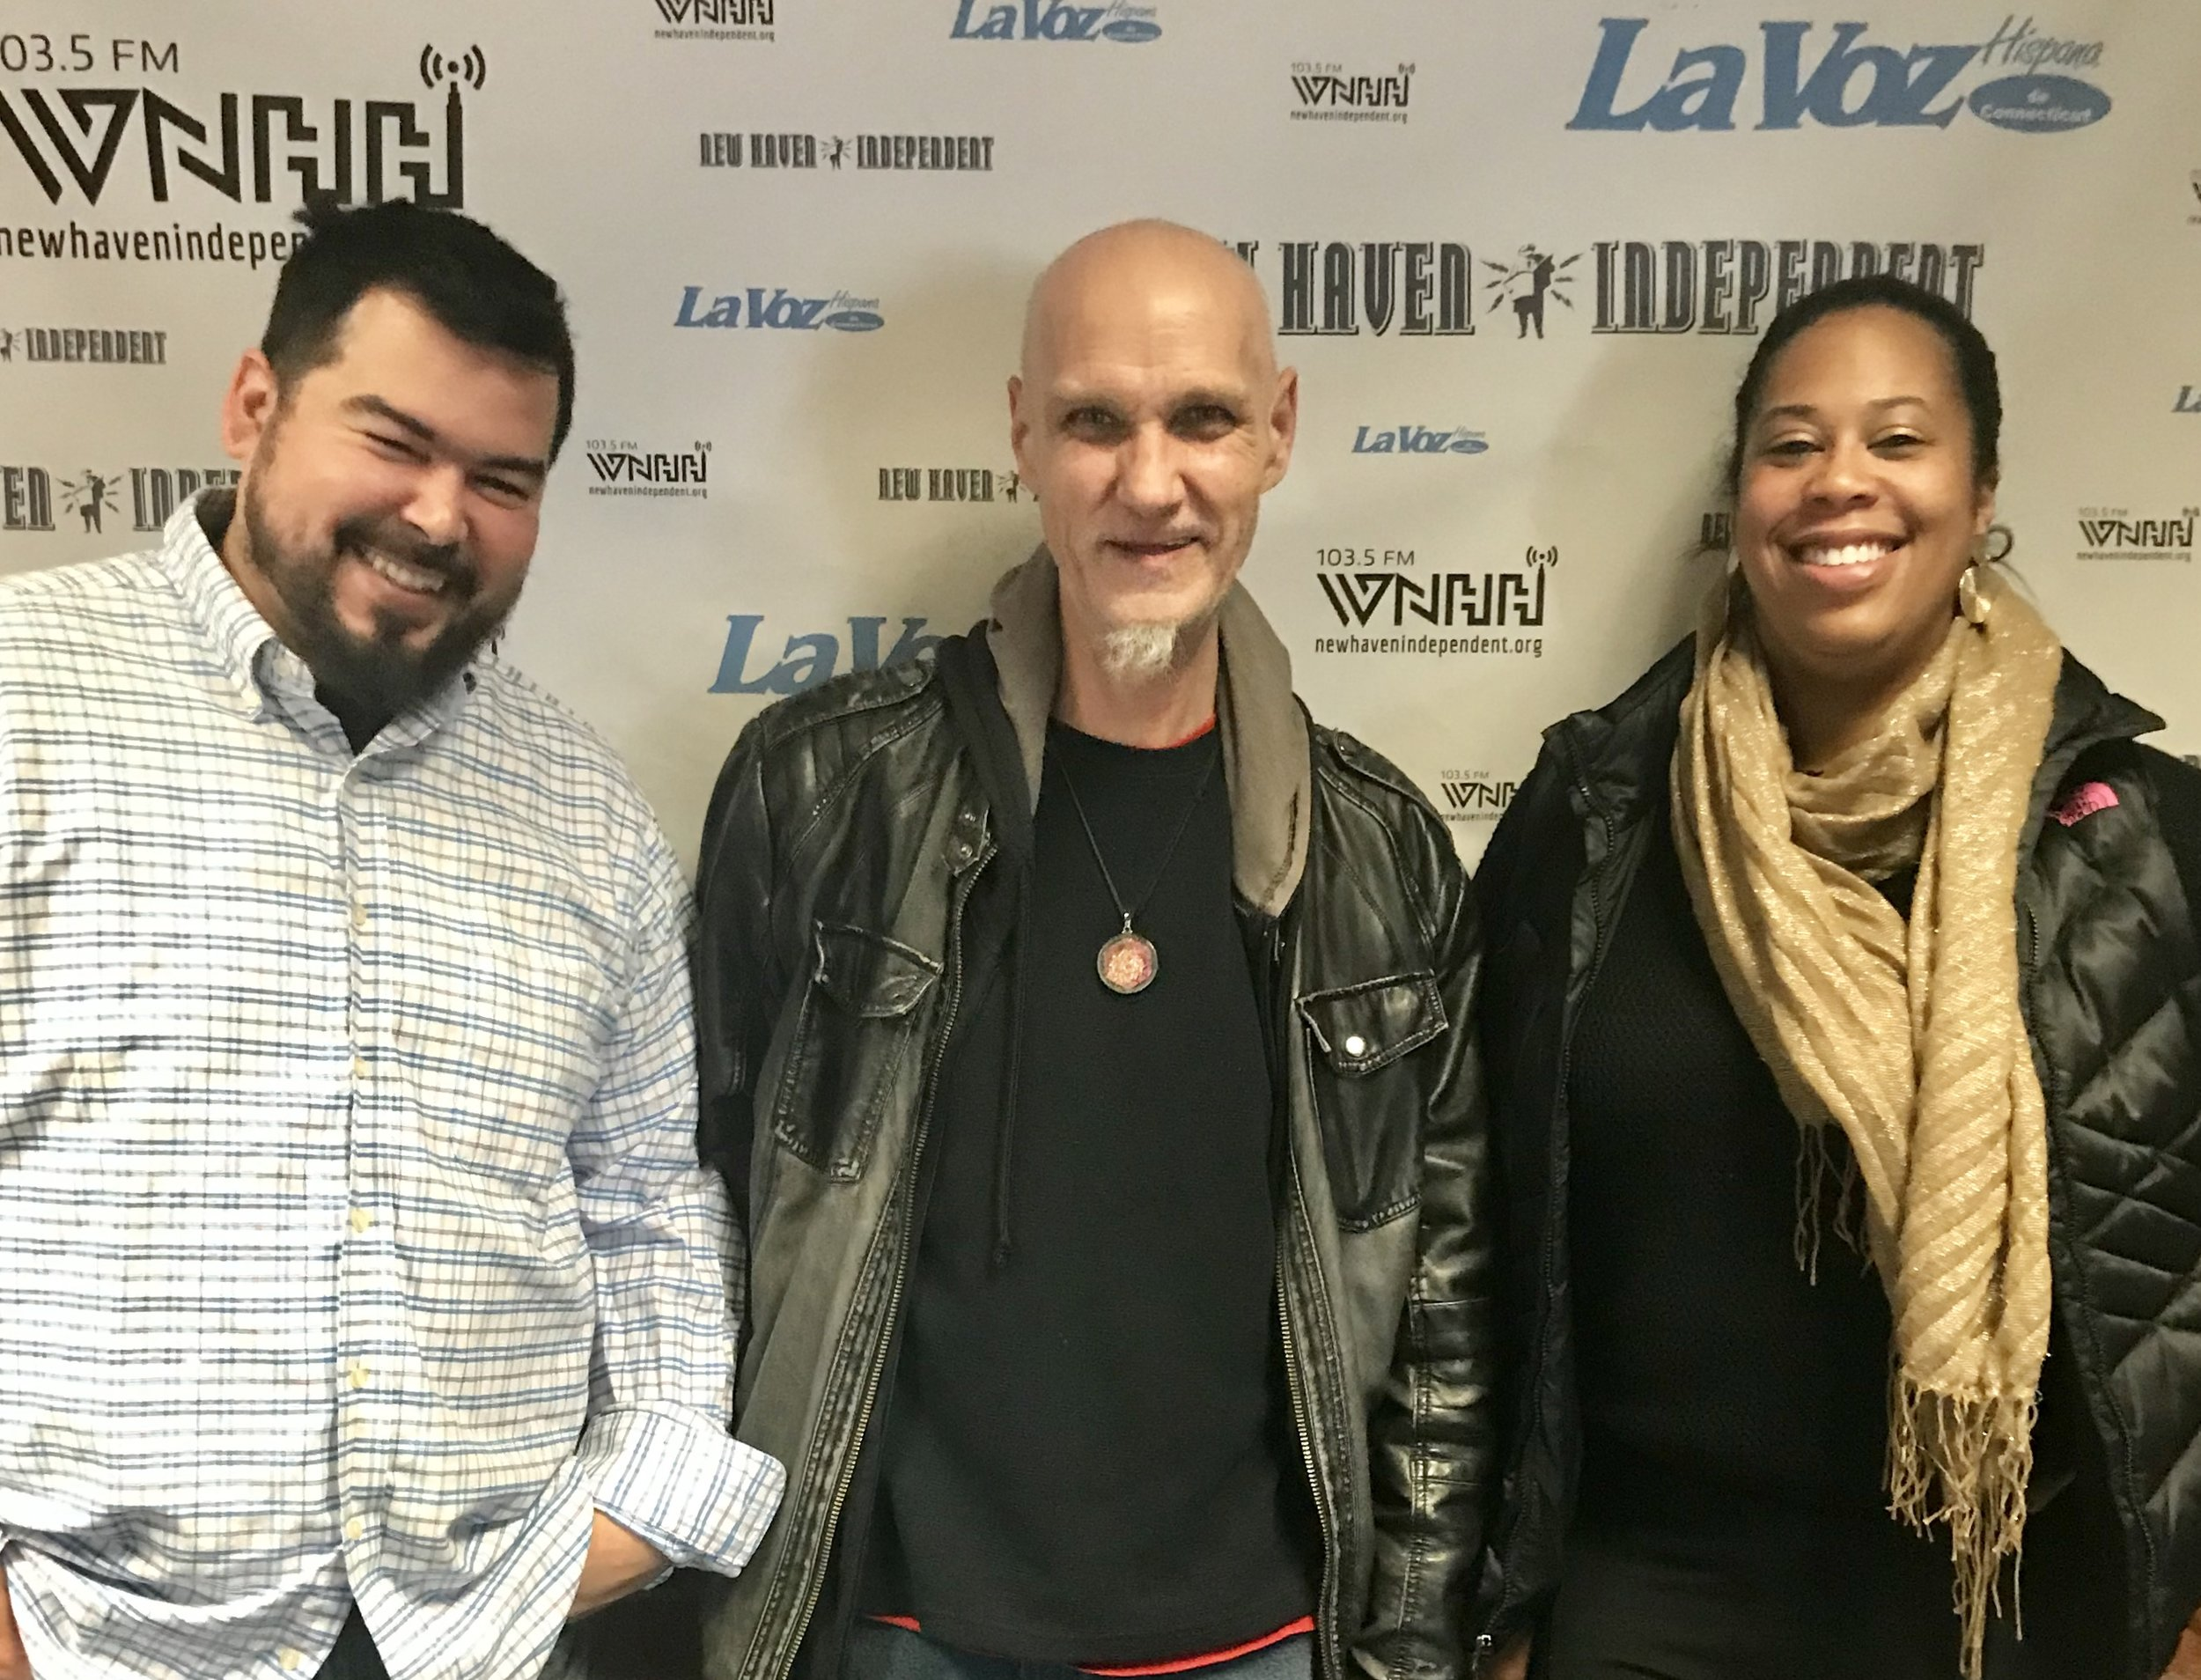 Joe LaChance, Kebra Smith-Bolden & Uncle Lou give us an update on the current state of weed.  The General Law Committee will hold a public hearing Tuesday March 13th at 10am, in Room 2C at the LOB, and a legalization bill is on the agenda!!  Raised Bill No 5458 AN ACT CONCERNING THE REGULATION OF THE RETAIL SALE OF MARIJUANA -Legalizes personal possession of up to 1oz of marijuana for individuals 21+ -Allows individuals the right to grow up to 6 plants on their own property for individual use, limit 12 plants per household -Establishes a Marijuana Control Commission, which will issue a select number of licenses to marijuana lounges and retailers  Read the full bill here: www.cga.ct.gov/2018/TOB/h/2018HB-05458-R00-HB.htm   Testimony tips : www.cga.ct.gov/olm/YourVoice.asp